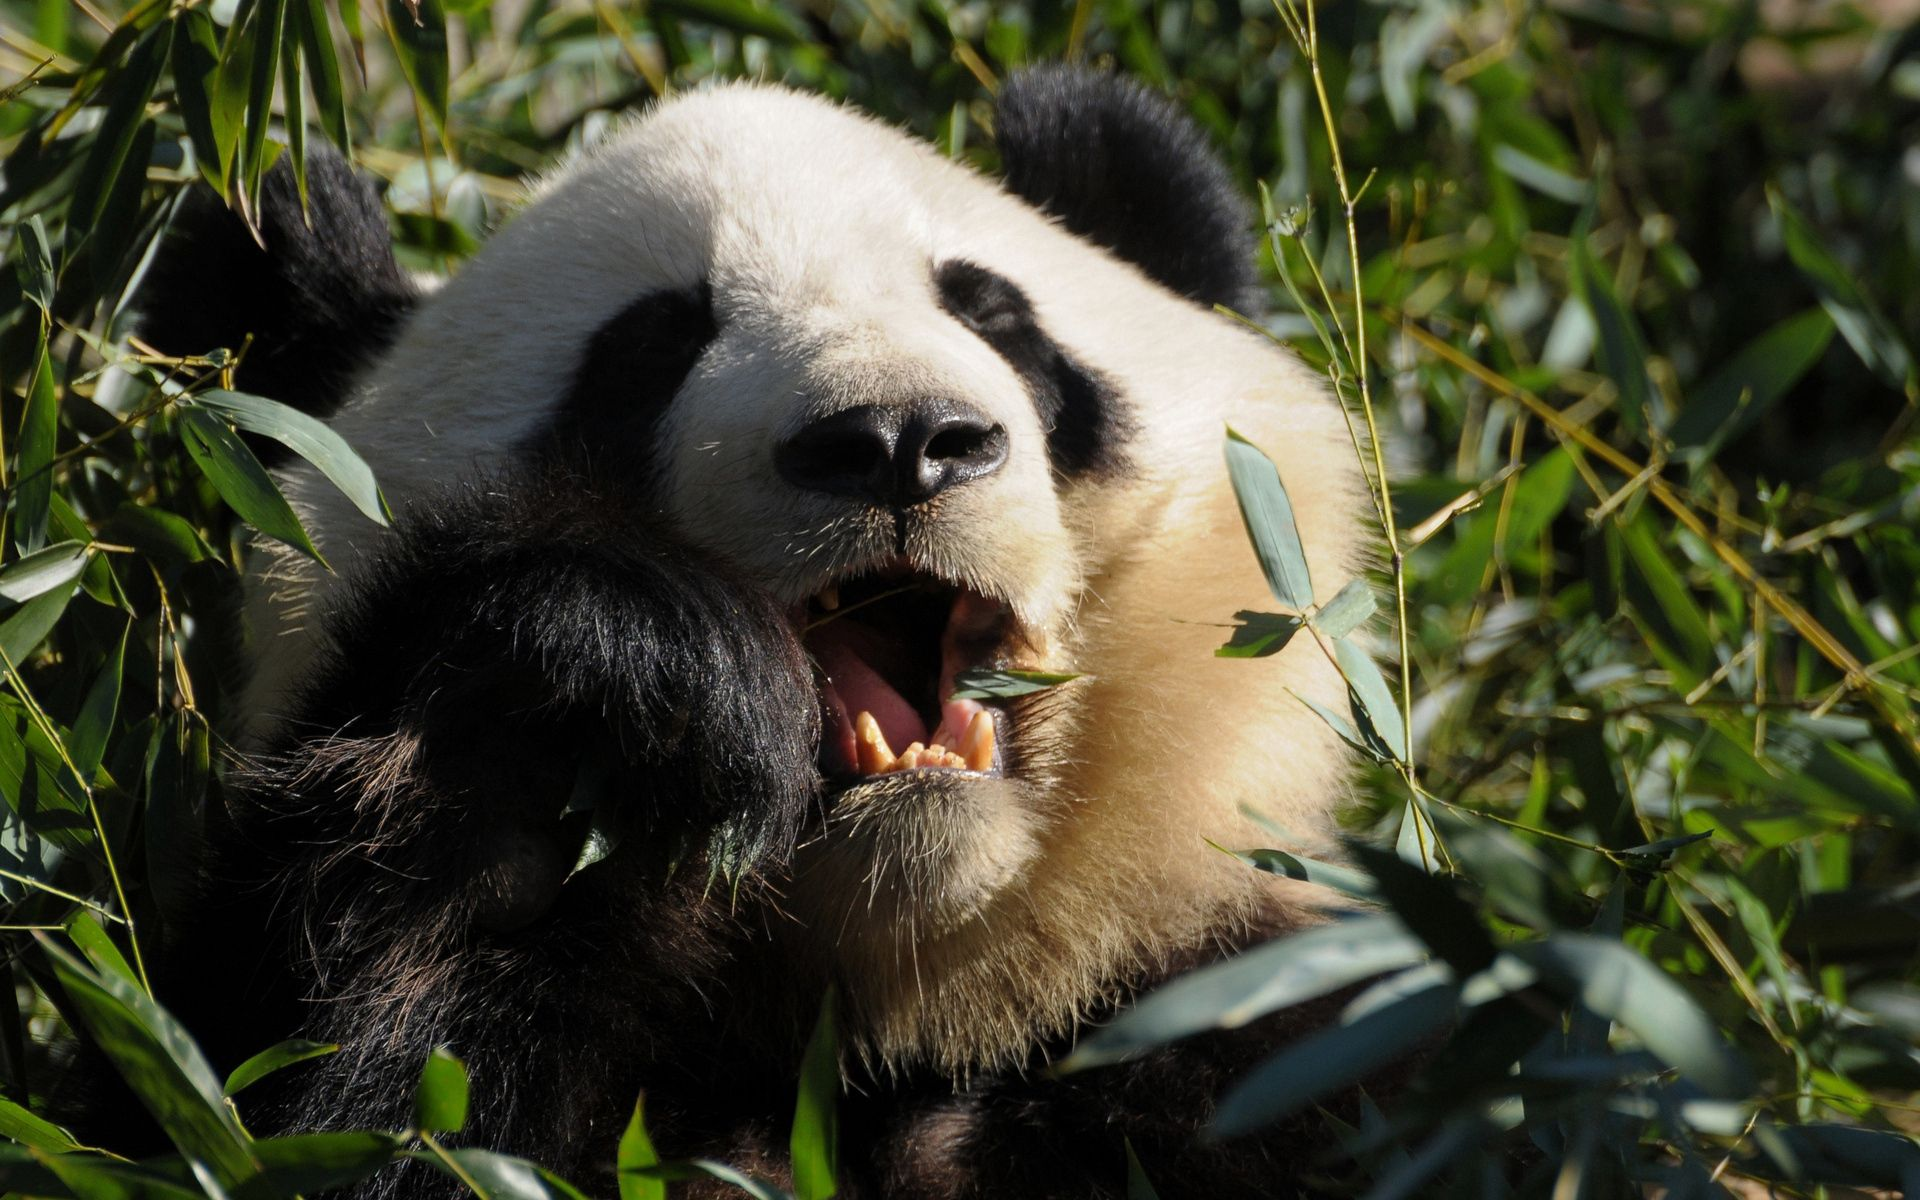 67542 download wallpaper Animals, Panda, Grass, Food screensavers and pictures for free